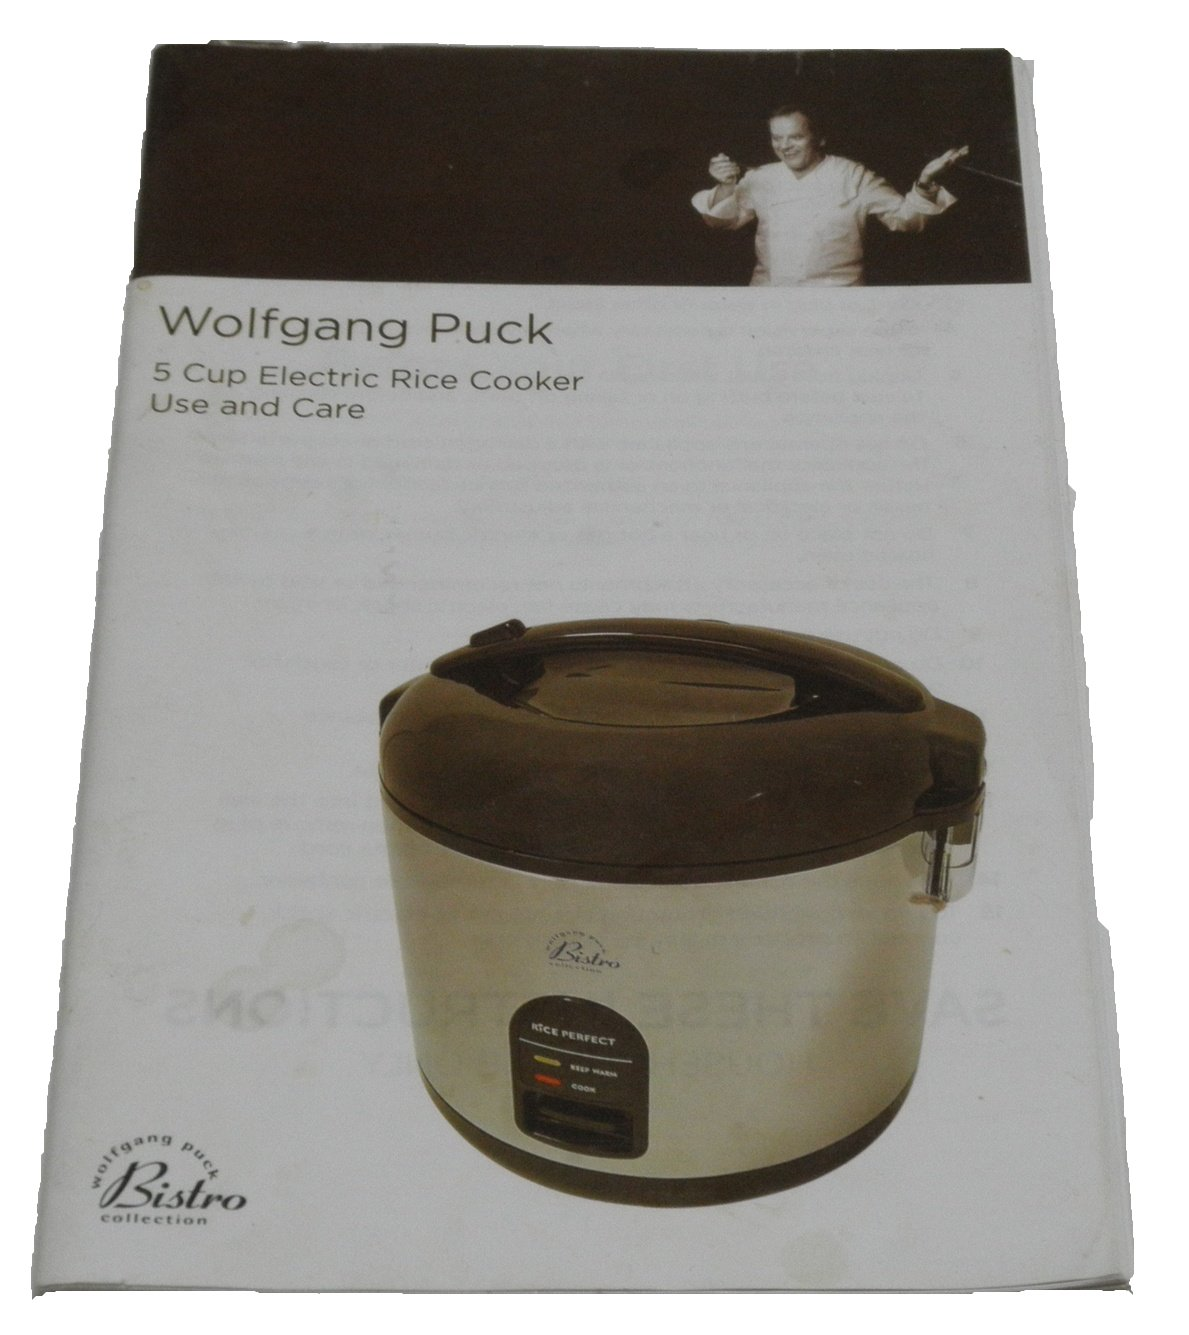 Wolfgang Puck 5 Cup Electric Rice Cooker Use Care And Recipe Book Wolfgang Puck Bistro Collection Amazon Com Books